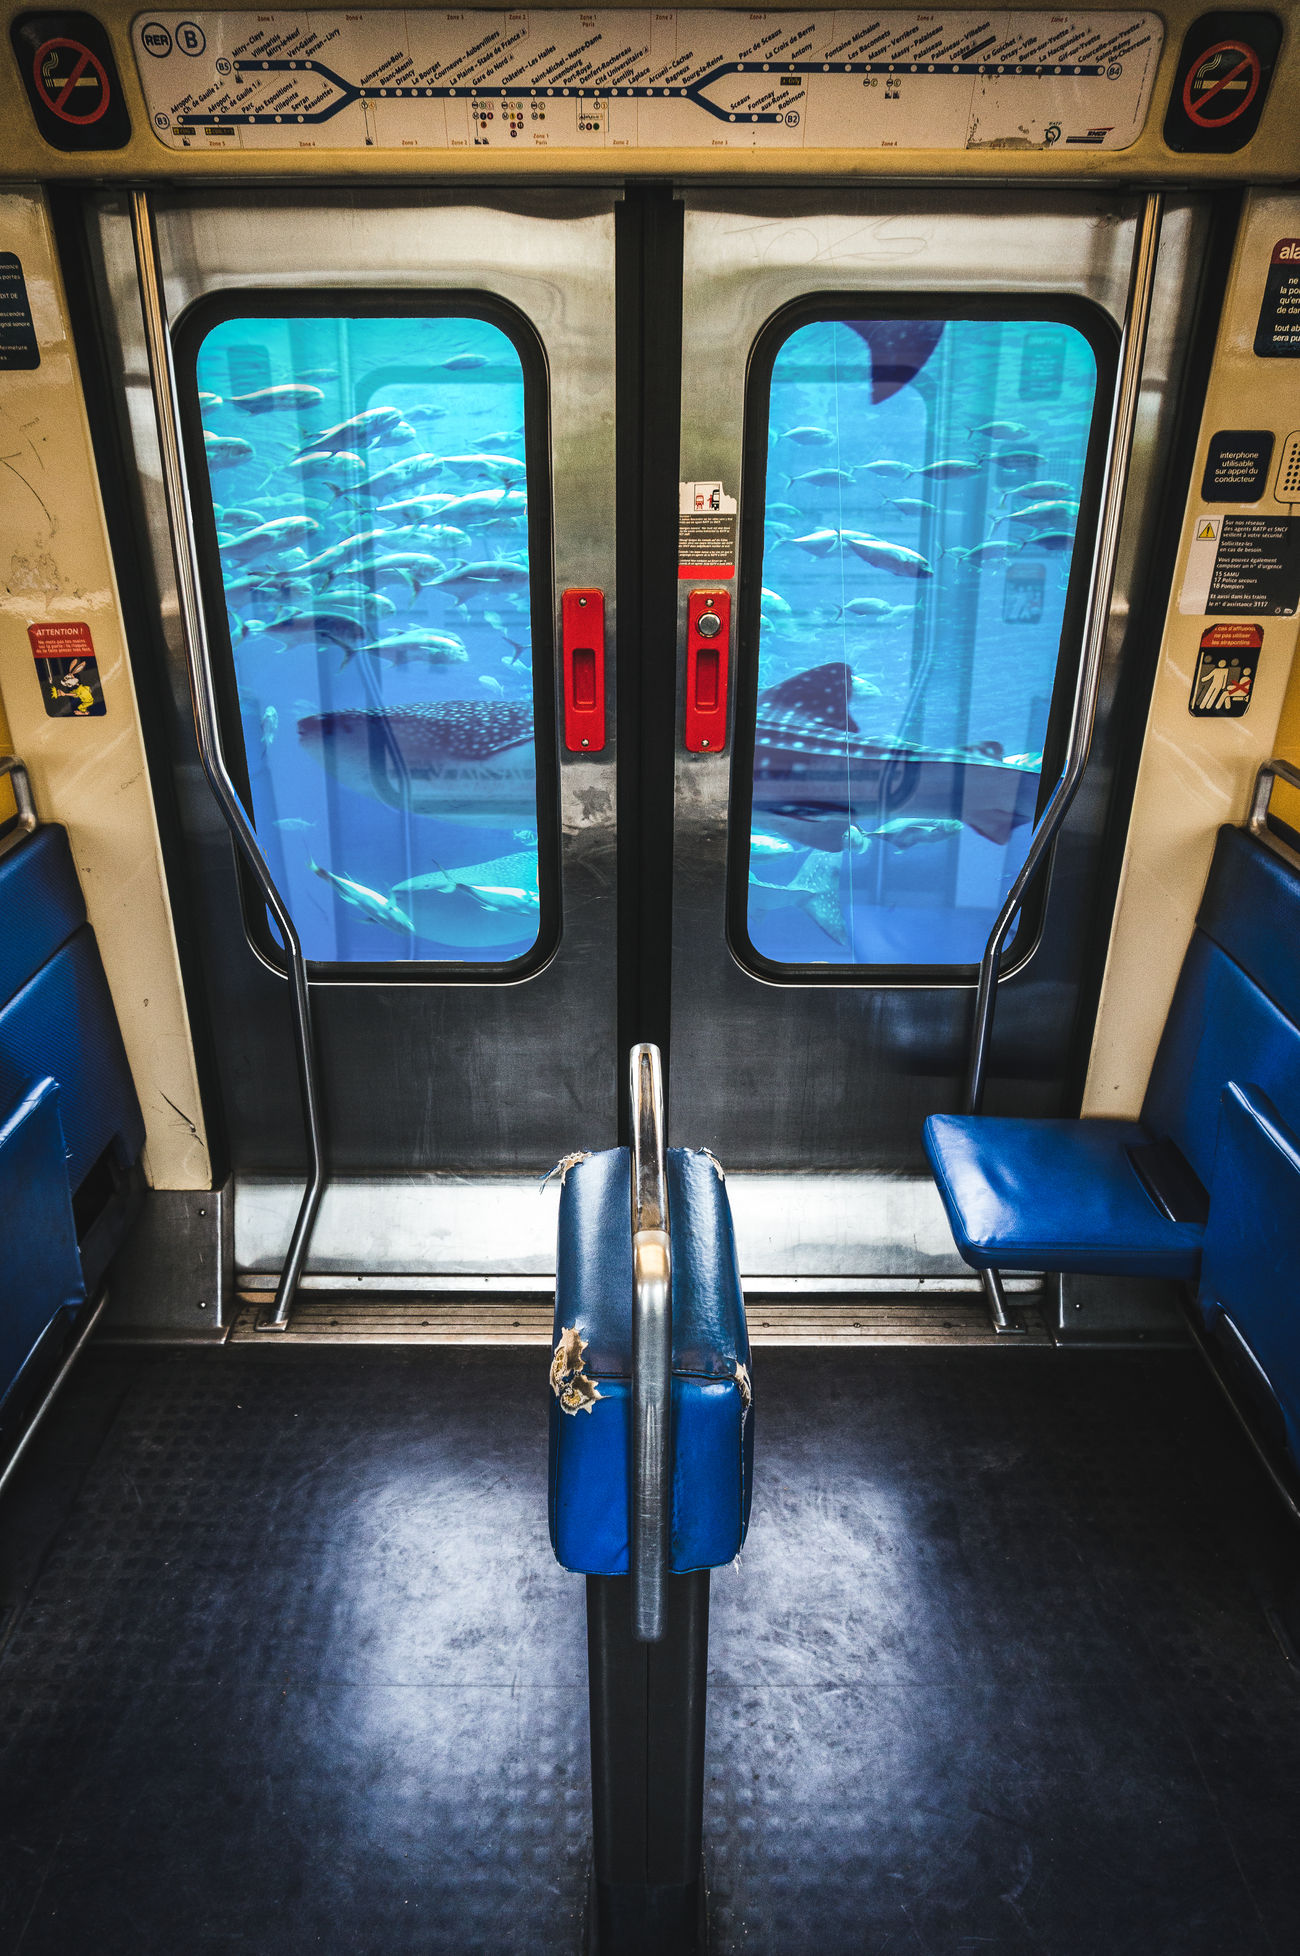 Fish RER RerB Paris Paris, France  Paris Je T Aime Hello World Check This Out Taking Photos Through The Window Delight  Colors Picoftheday Transportation Subway Station Shark Animals Blue Underthesea Submarine Underwater Windows Poisson Weird Requin